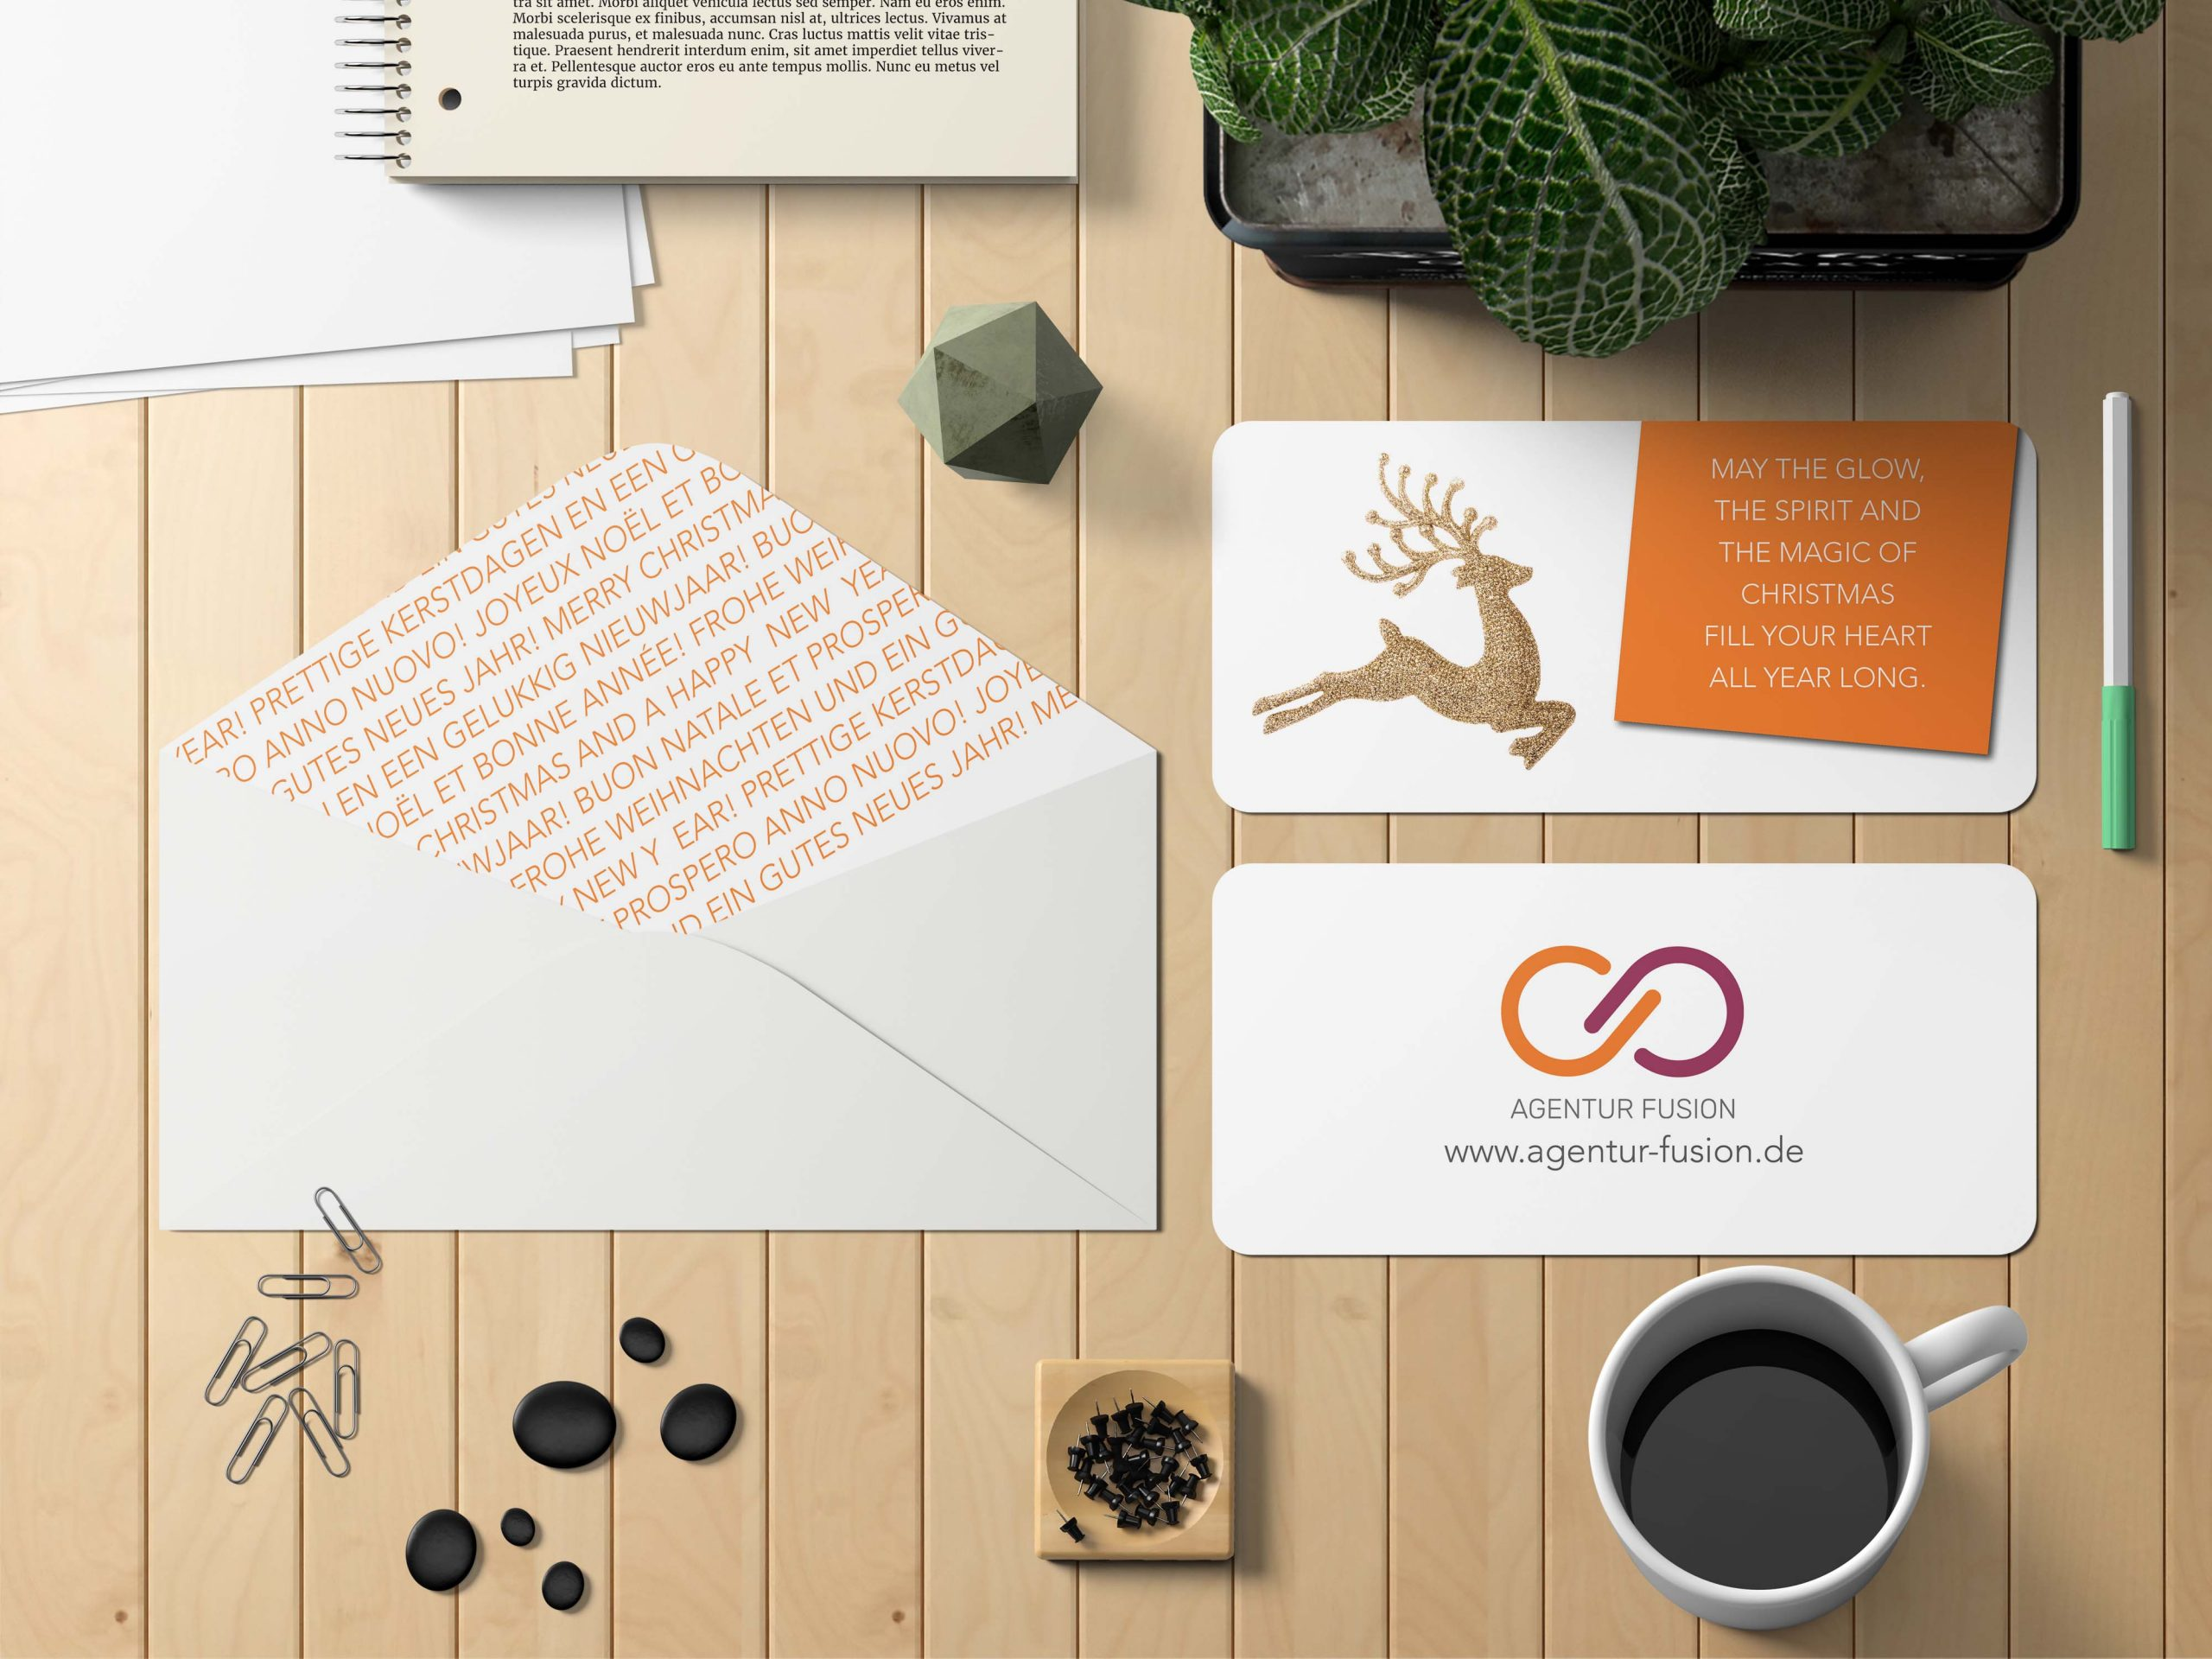 stationery with christmas card and envelope on desk with office stuff around